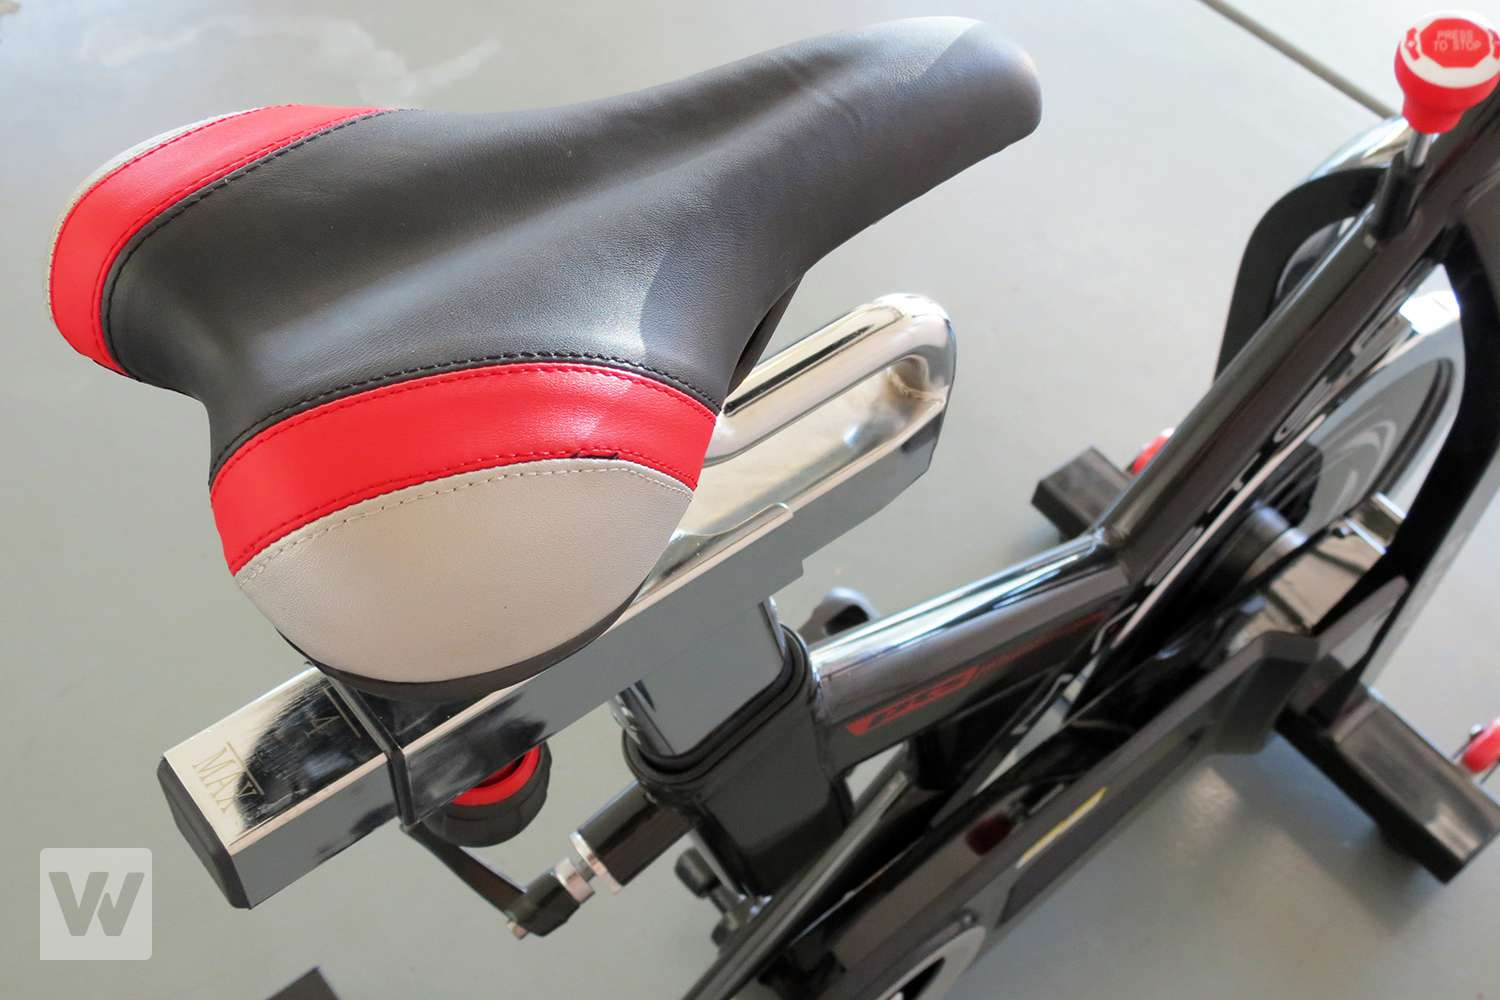 Bladez Master Gs Indoor Cycle Review A Sturdy Spin Bike